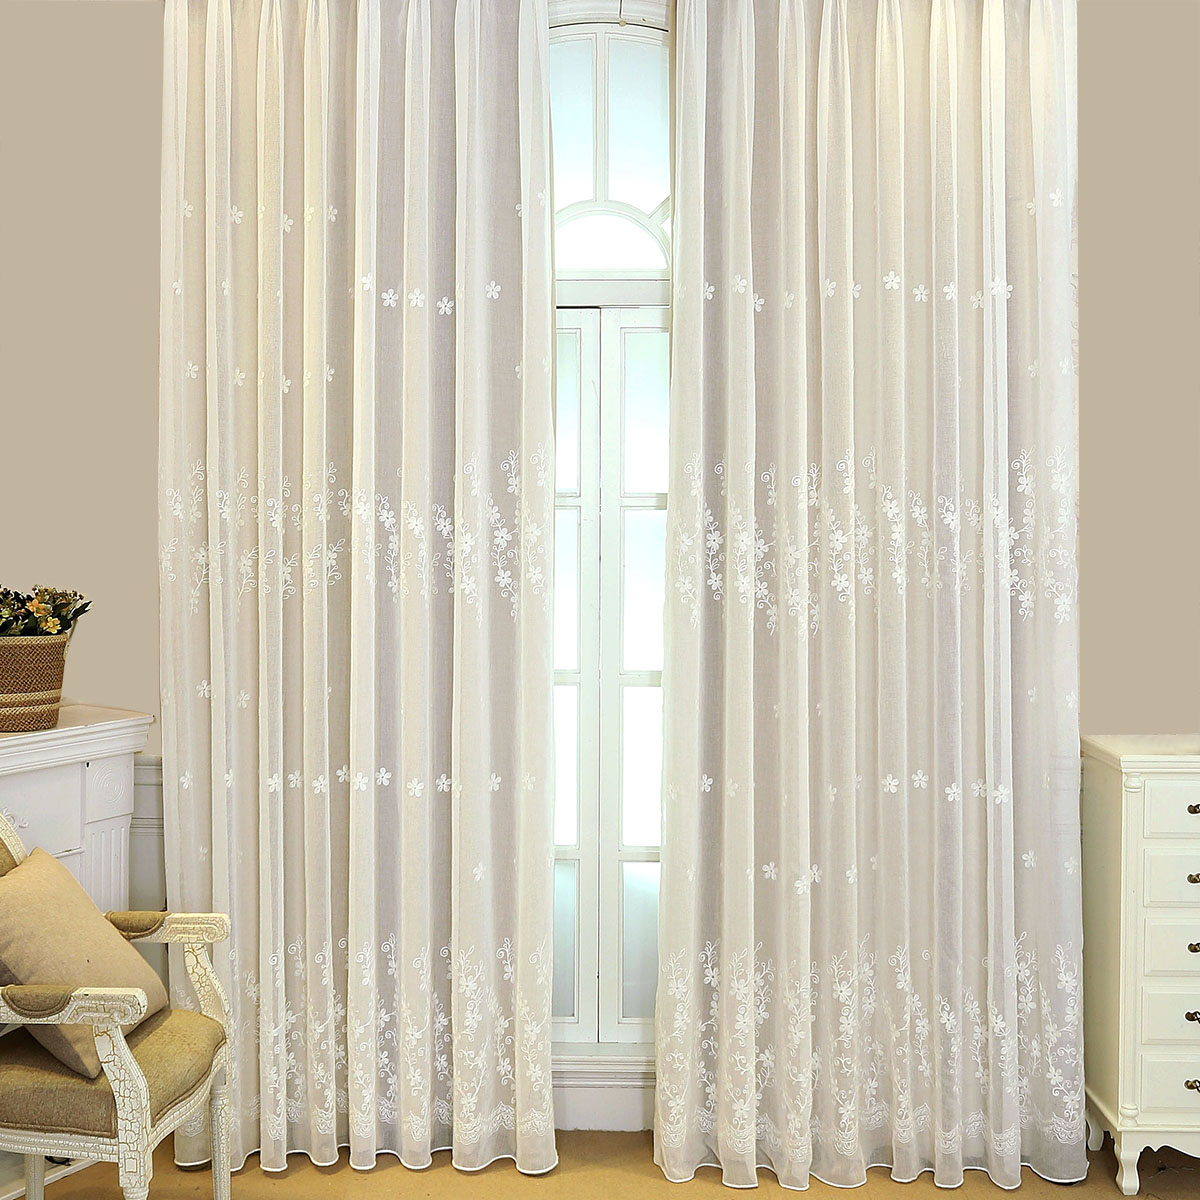 How to choose lining for voile curtains